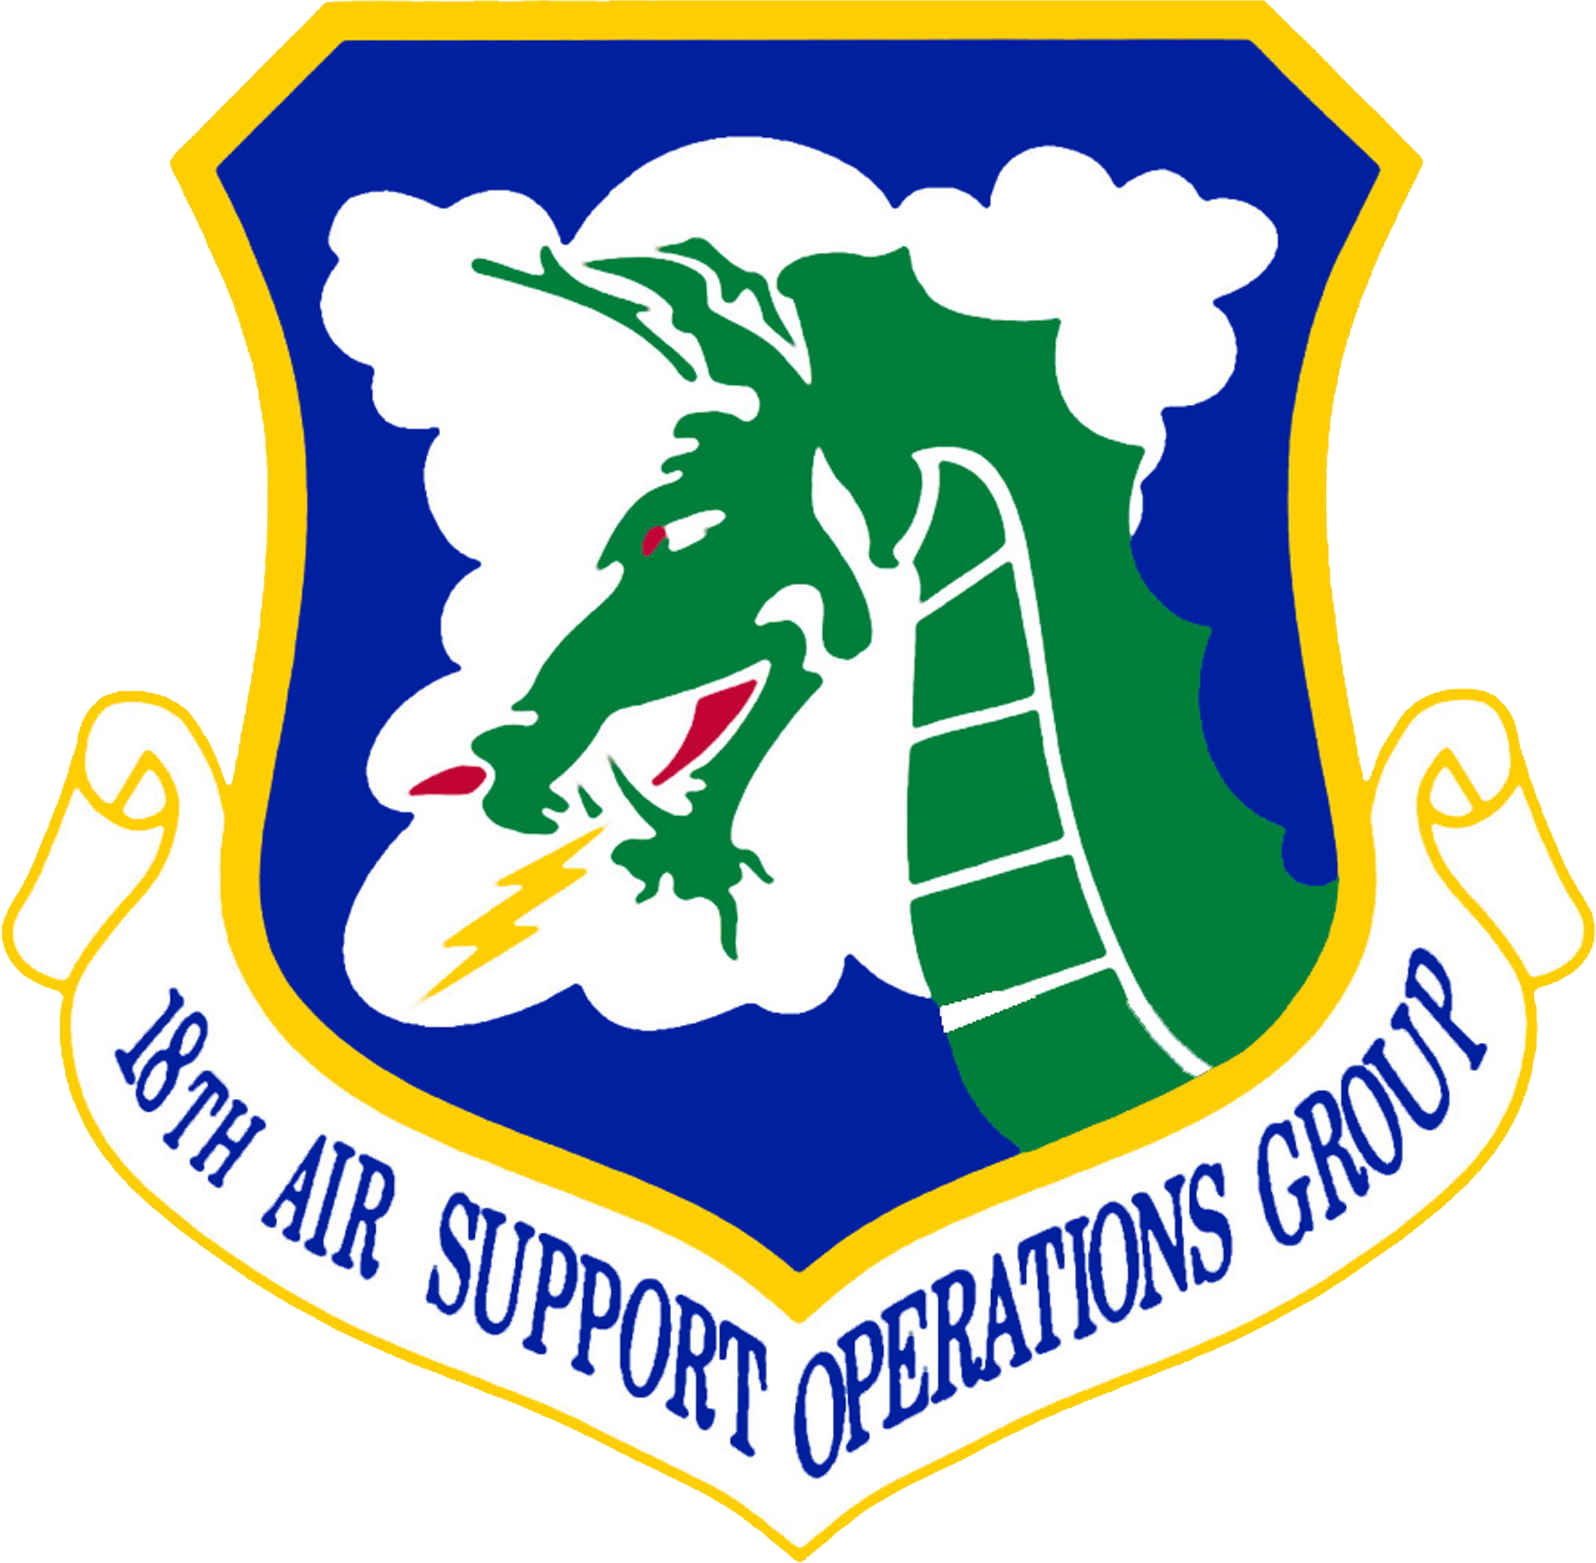 Air Support Operations Group 27